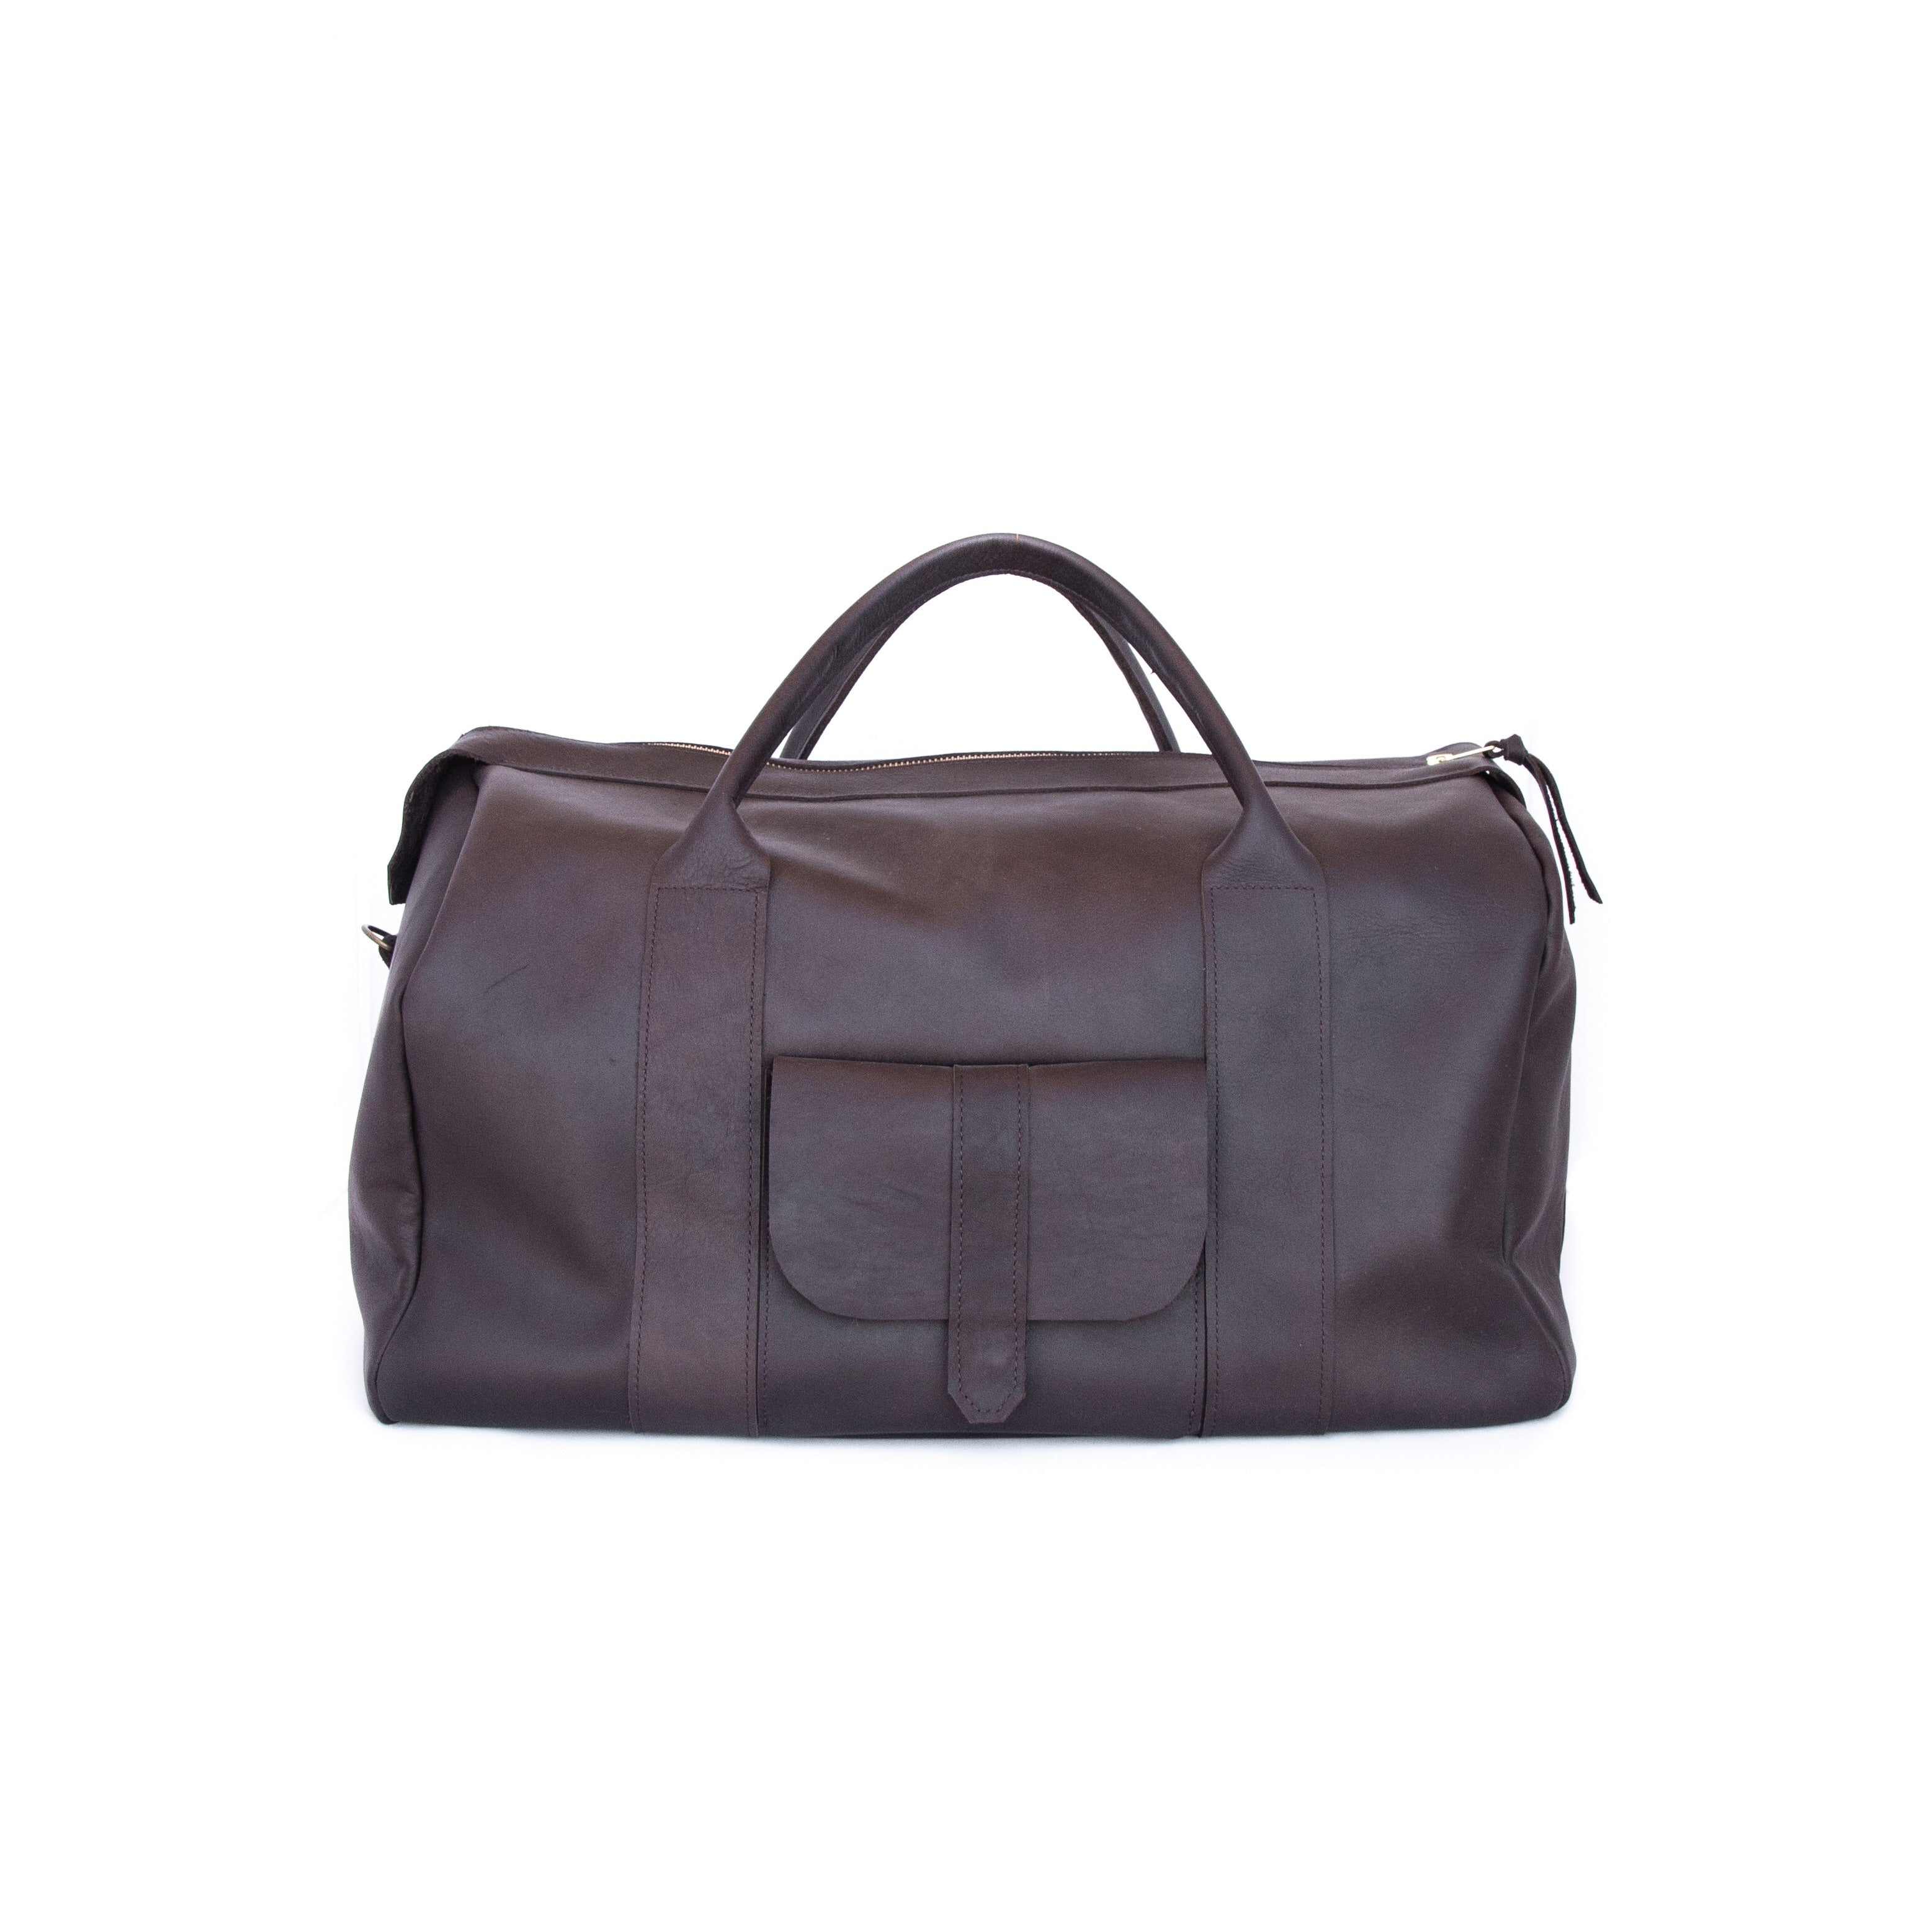 The Weekender in Dark Brown Leather - handcrafted by Market Canvas Leather in Tofino, BC, Canada